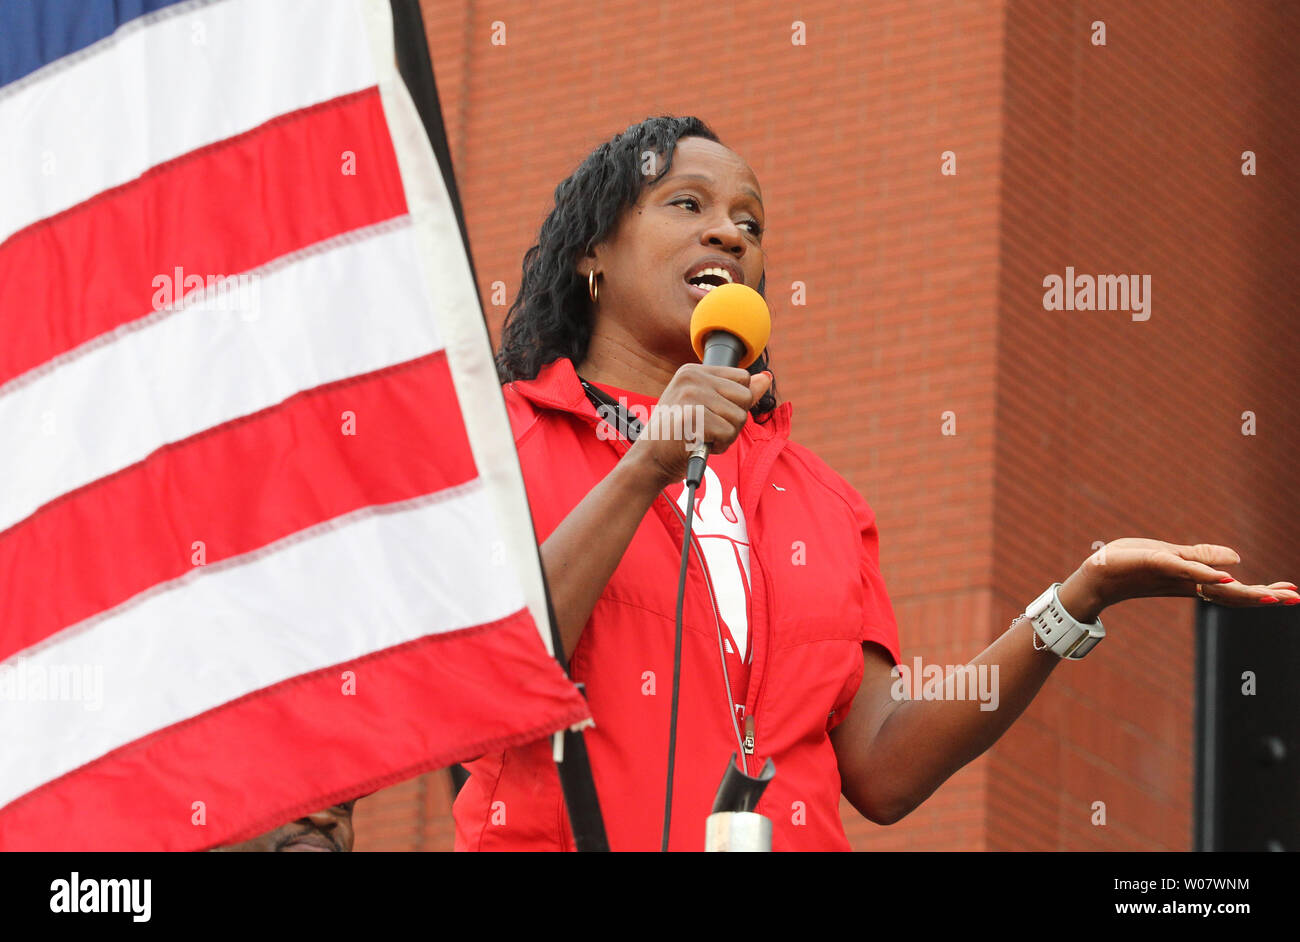 Former Olympic gold metalist Jackie-Joyner Kersee addresses runners before the start of the 7th Annual Cardinals Care 6K run at Busch Stadium in St. Louis on September 18, 2016.   Photo by Bill Greenblatt/UPI - Stock Image